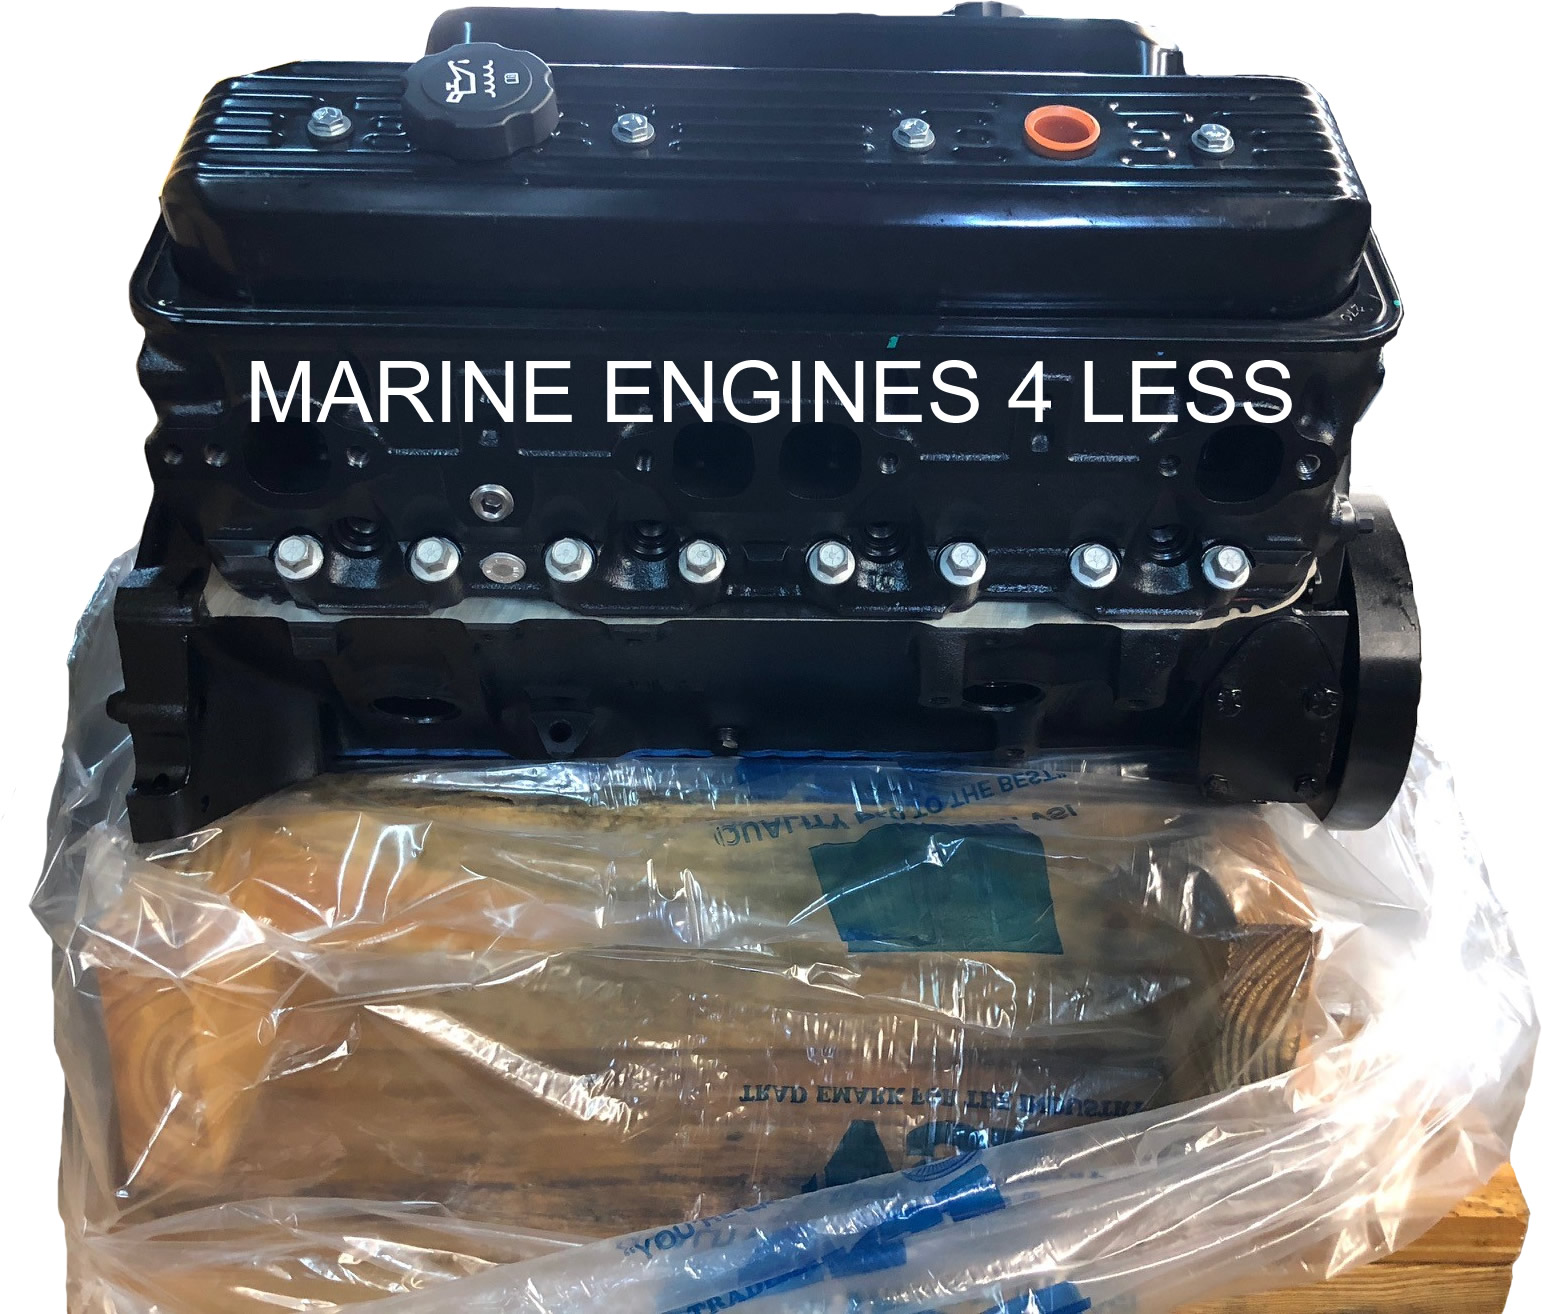 Remanufactured 5 7L Pre-Vortec - 1996 - Marine Base Engine